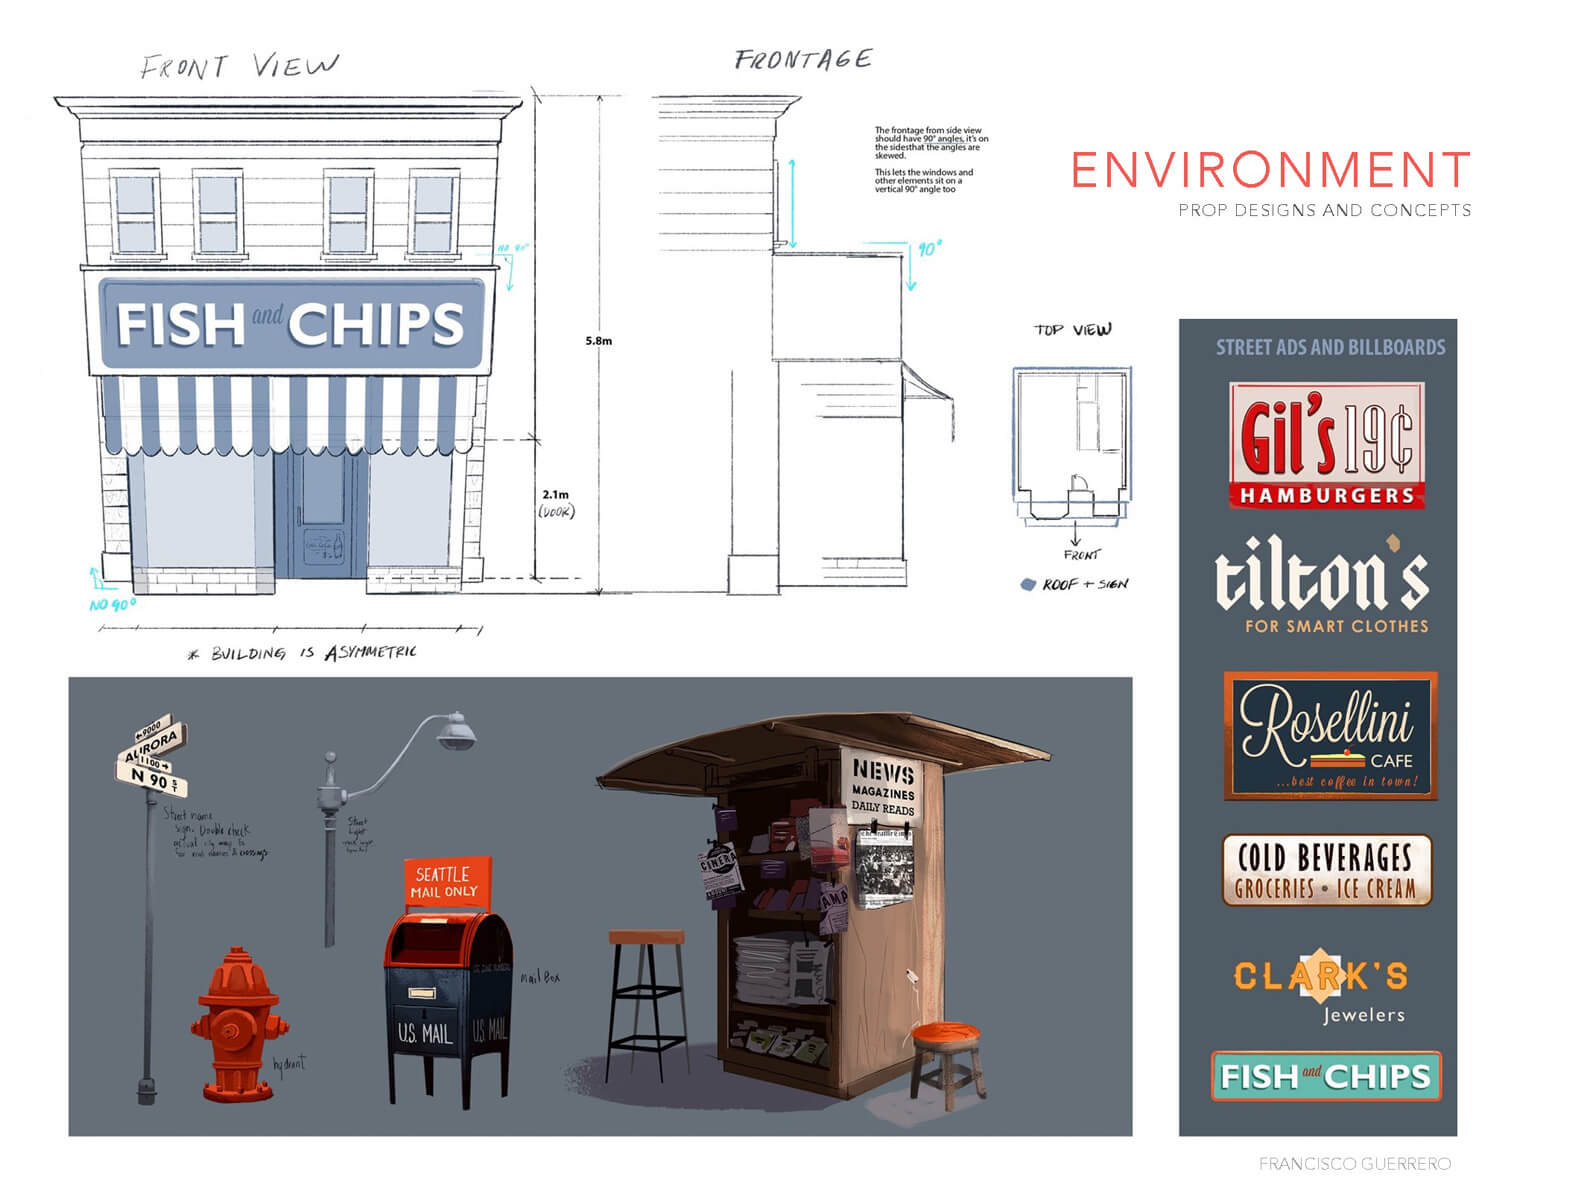 Concept sketches and drawings of building frontage, props, and logos for street setting in Orientation Center for the Unseen